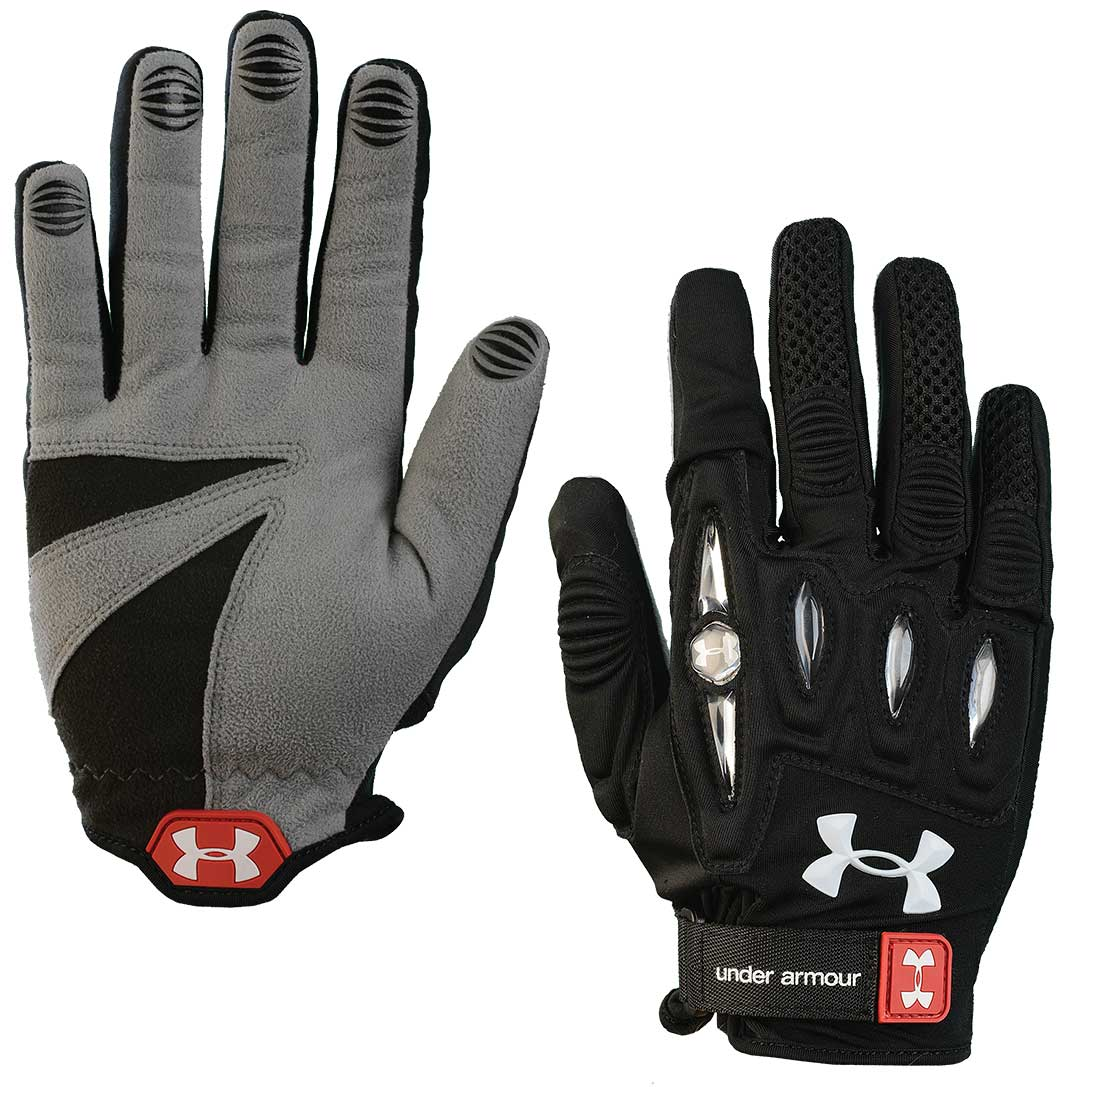 Under Armour Player 2 Womenu0027s Lacrosse Glove